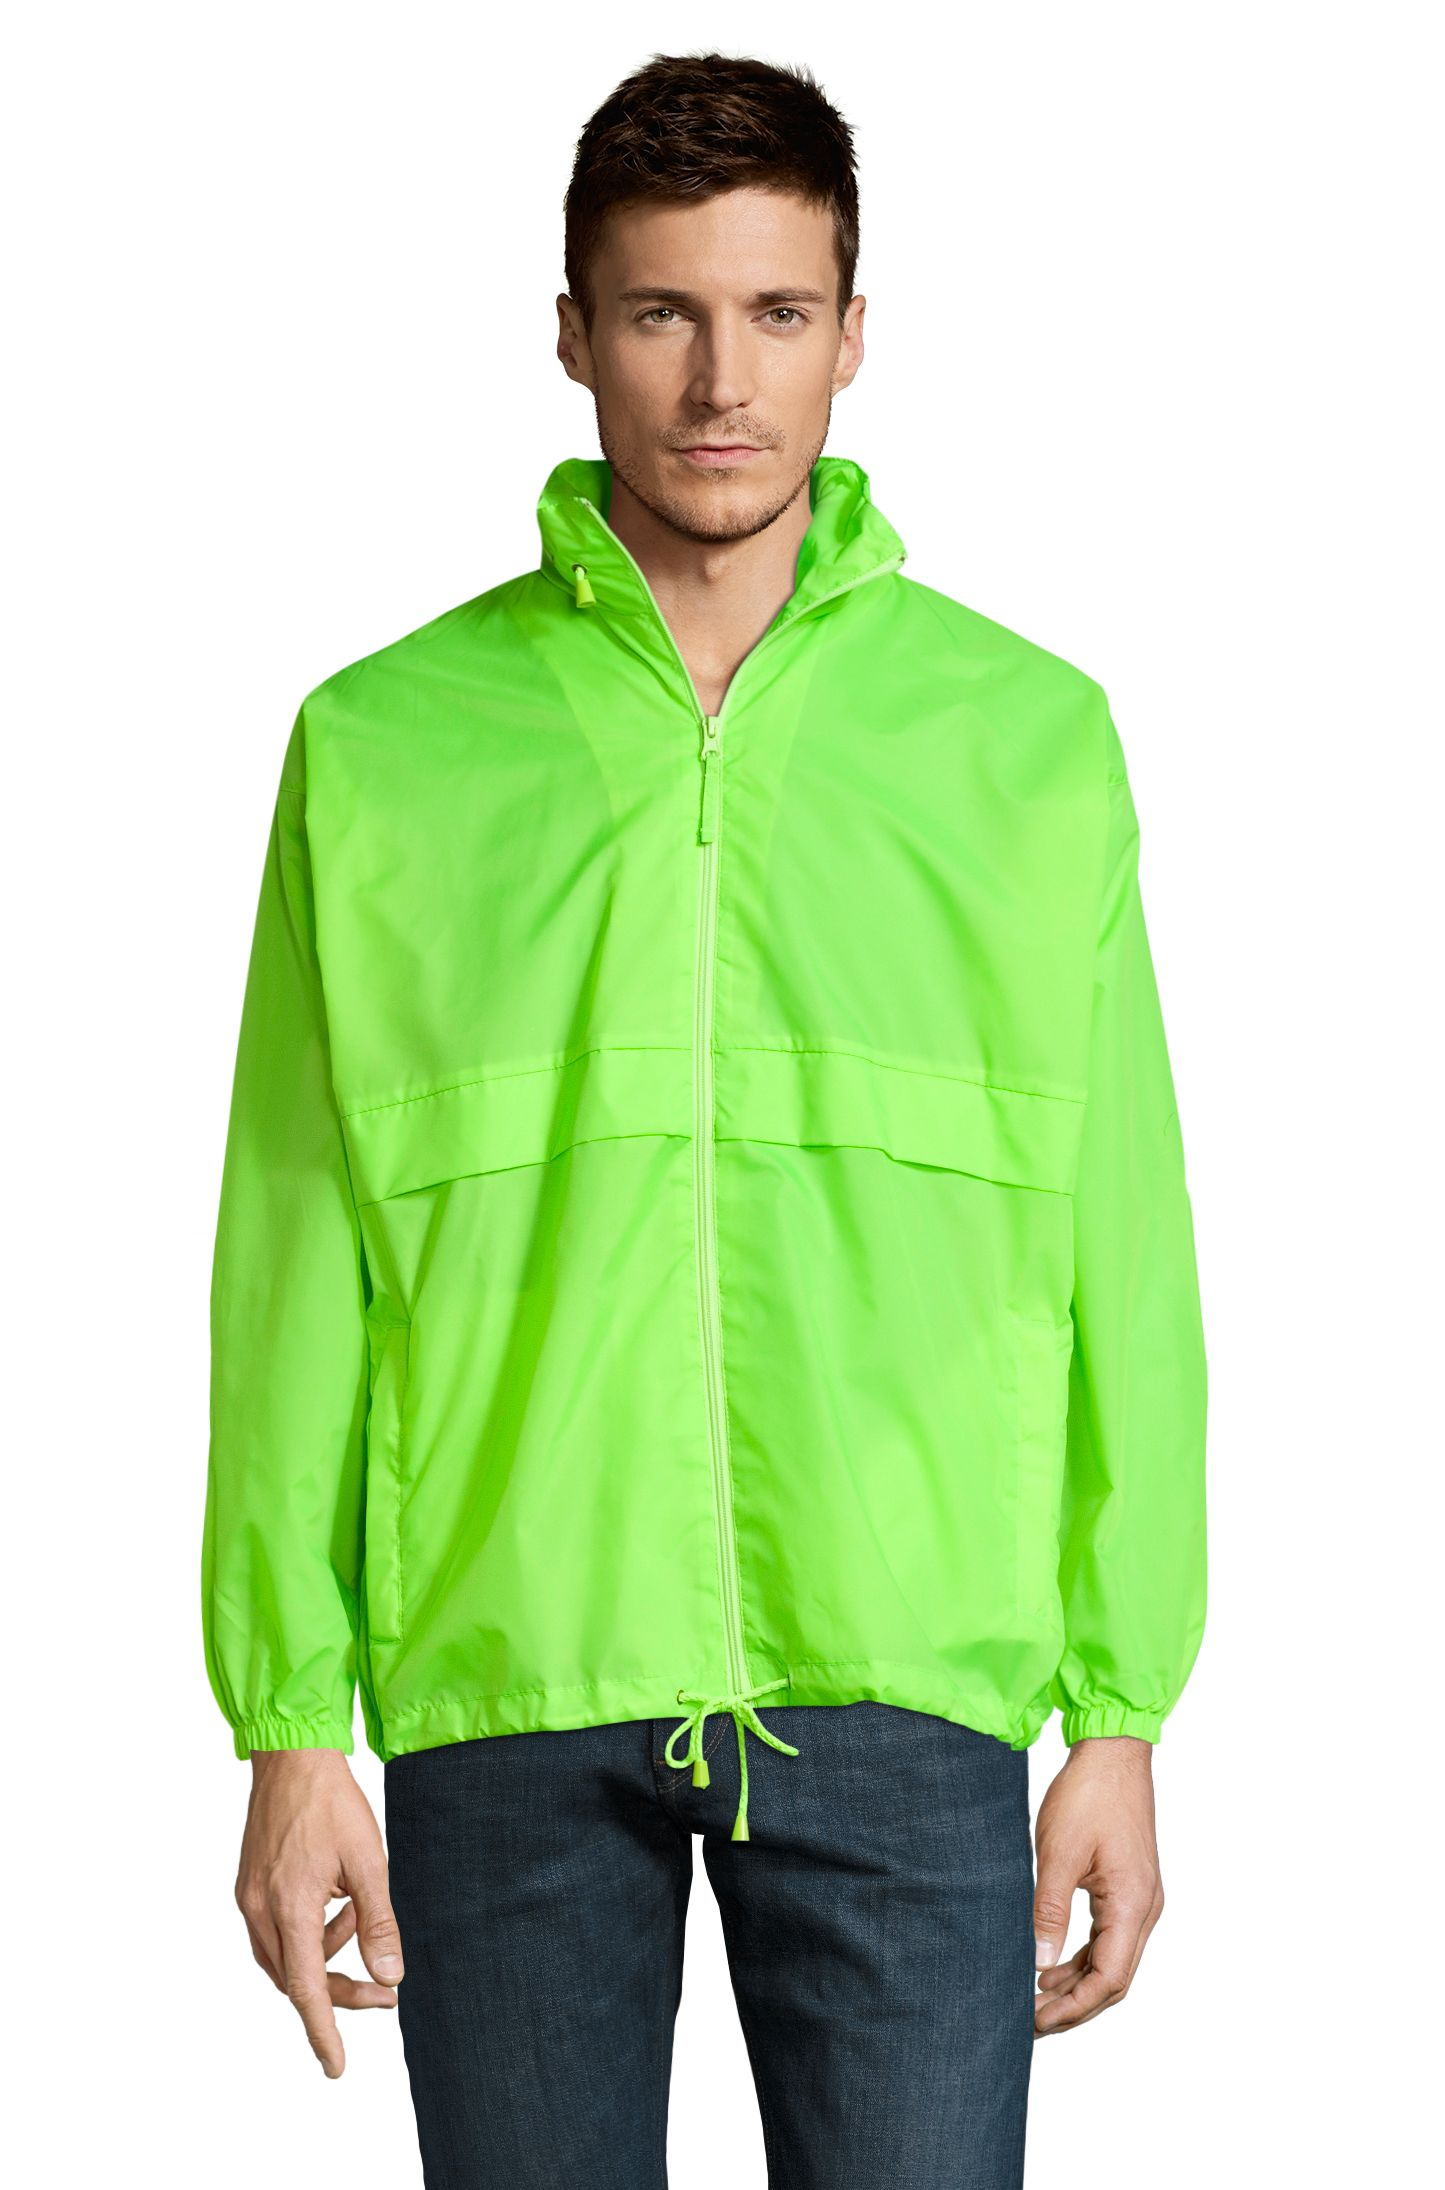 282 - Lime fluo